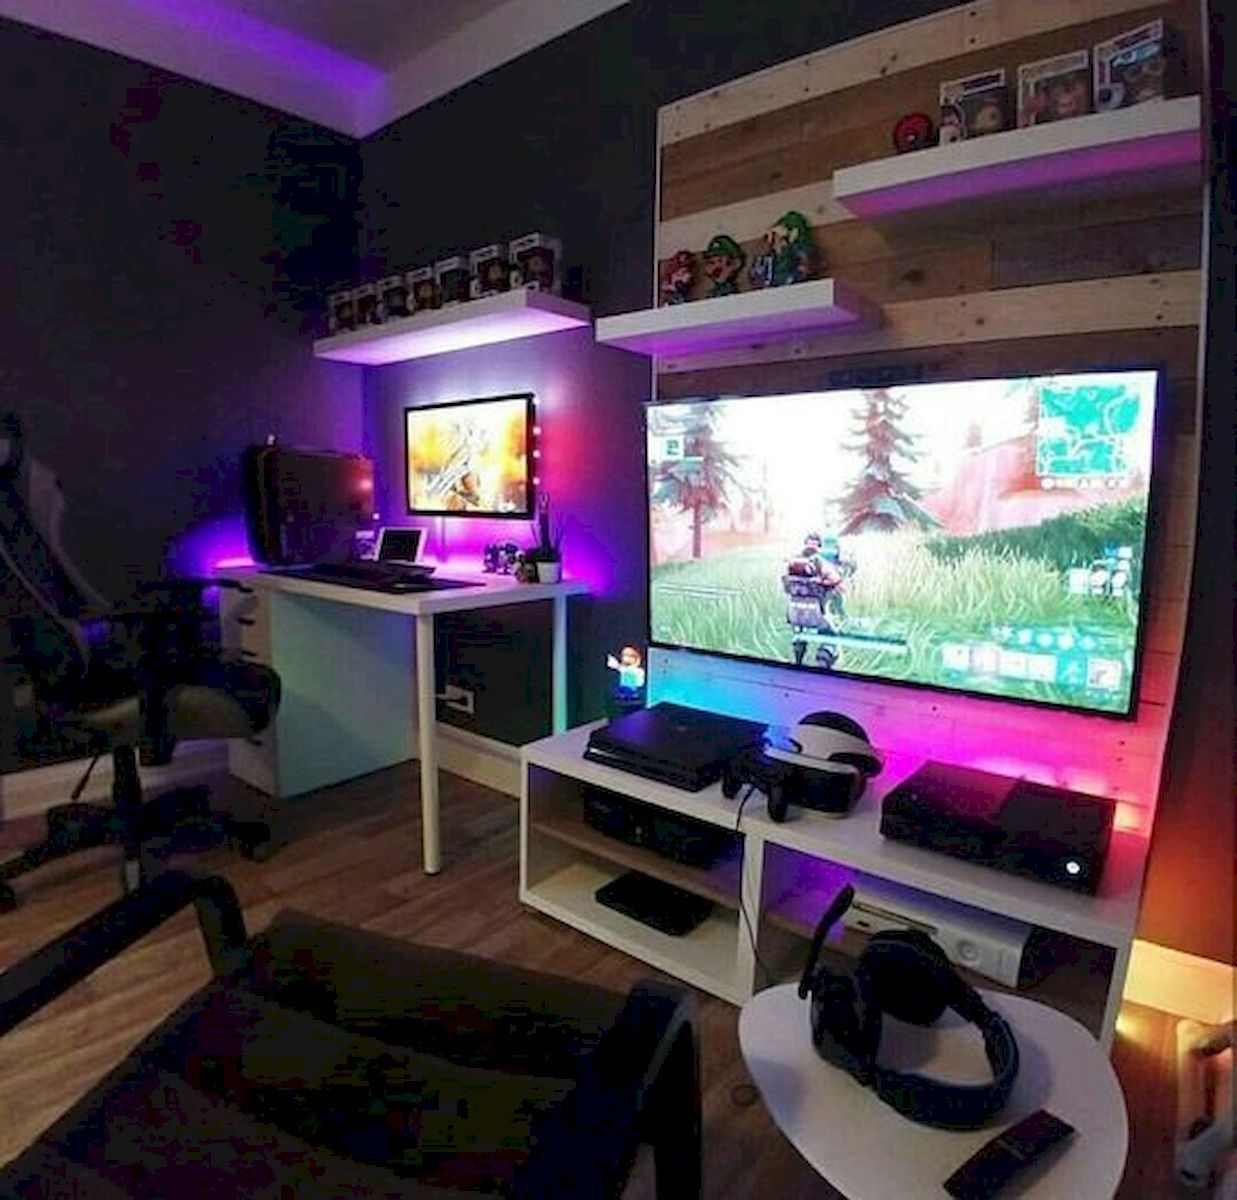 45 Fantastic Computer Gaming Room Decor Ideas and Design images